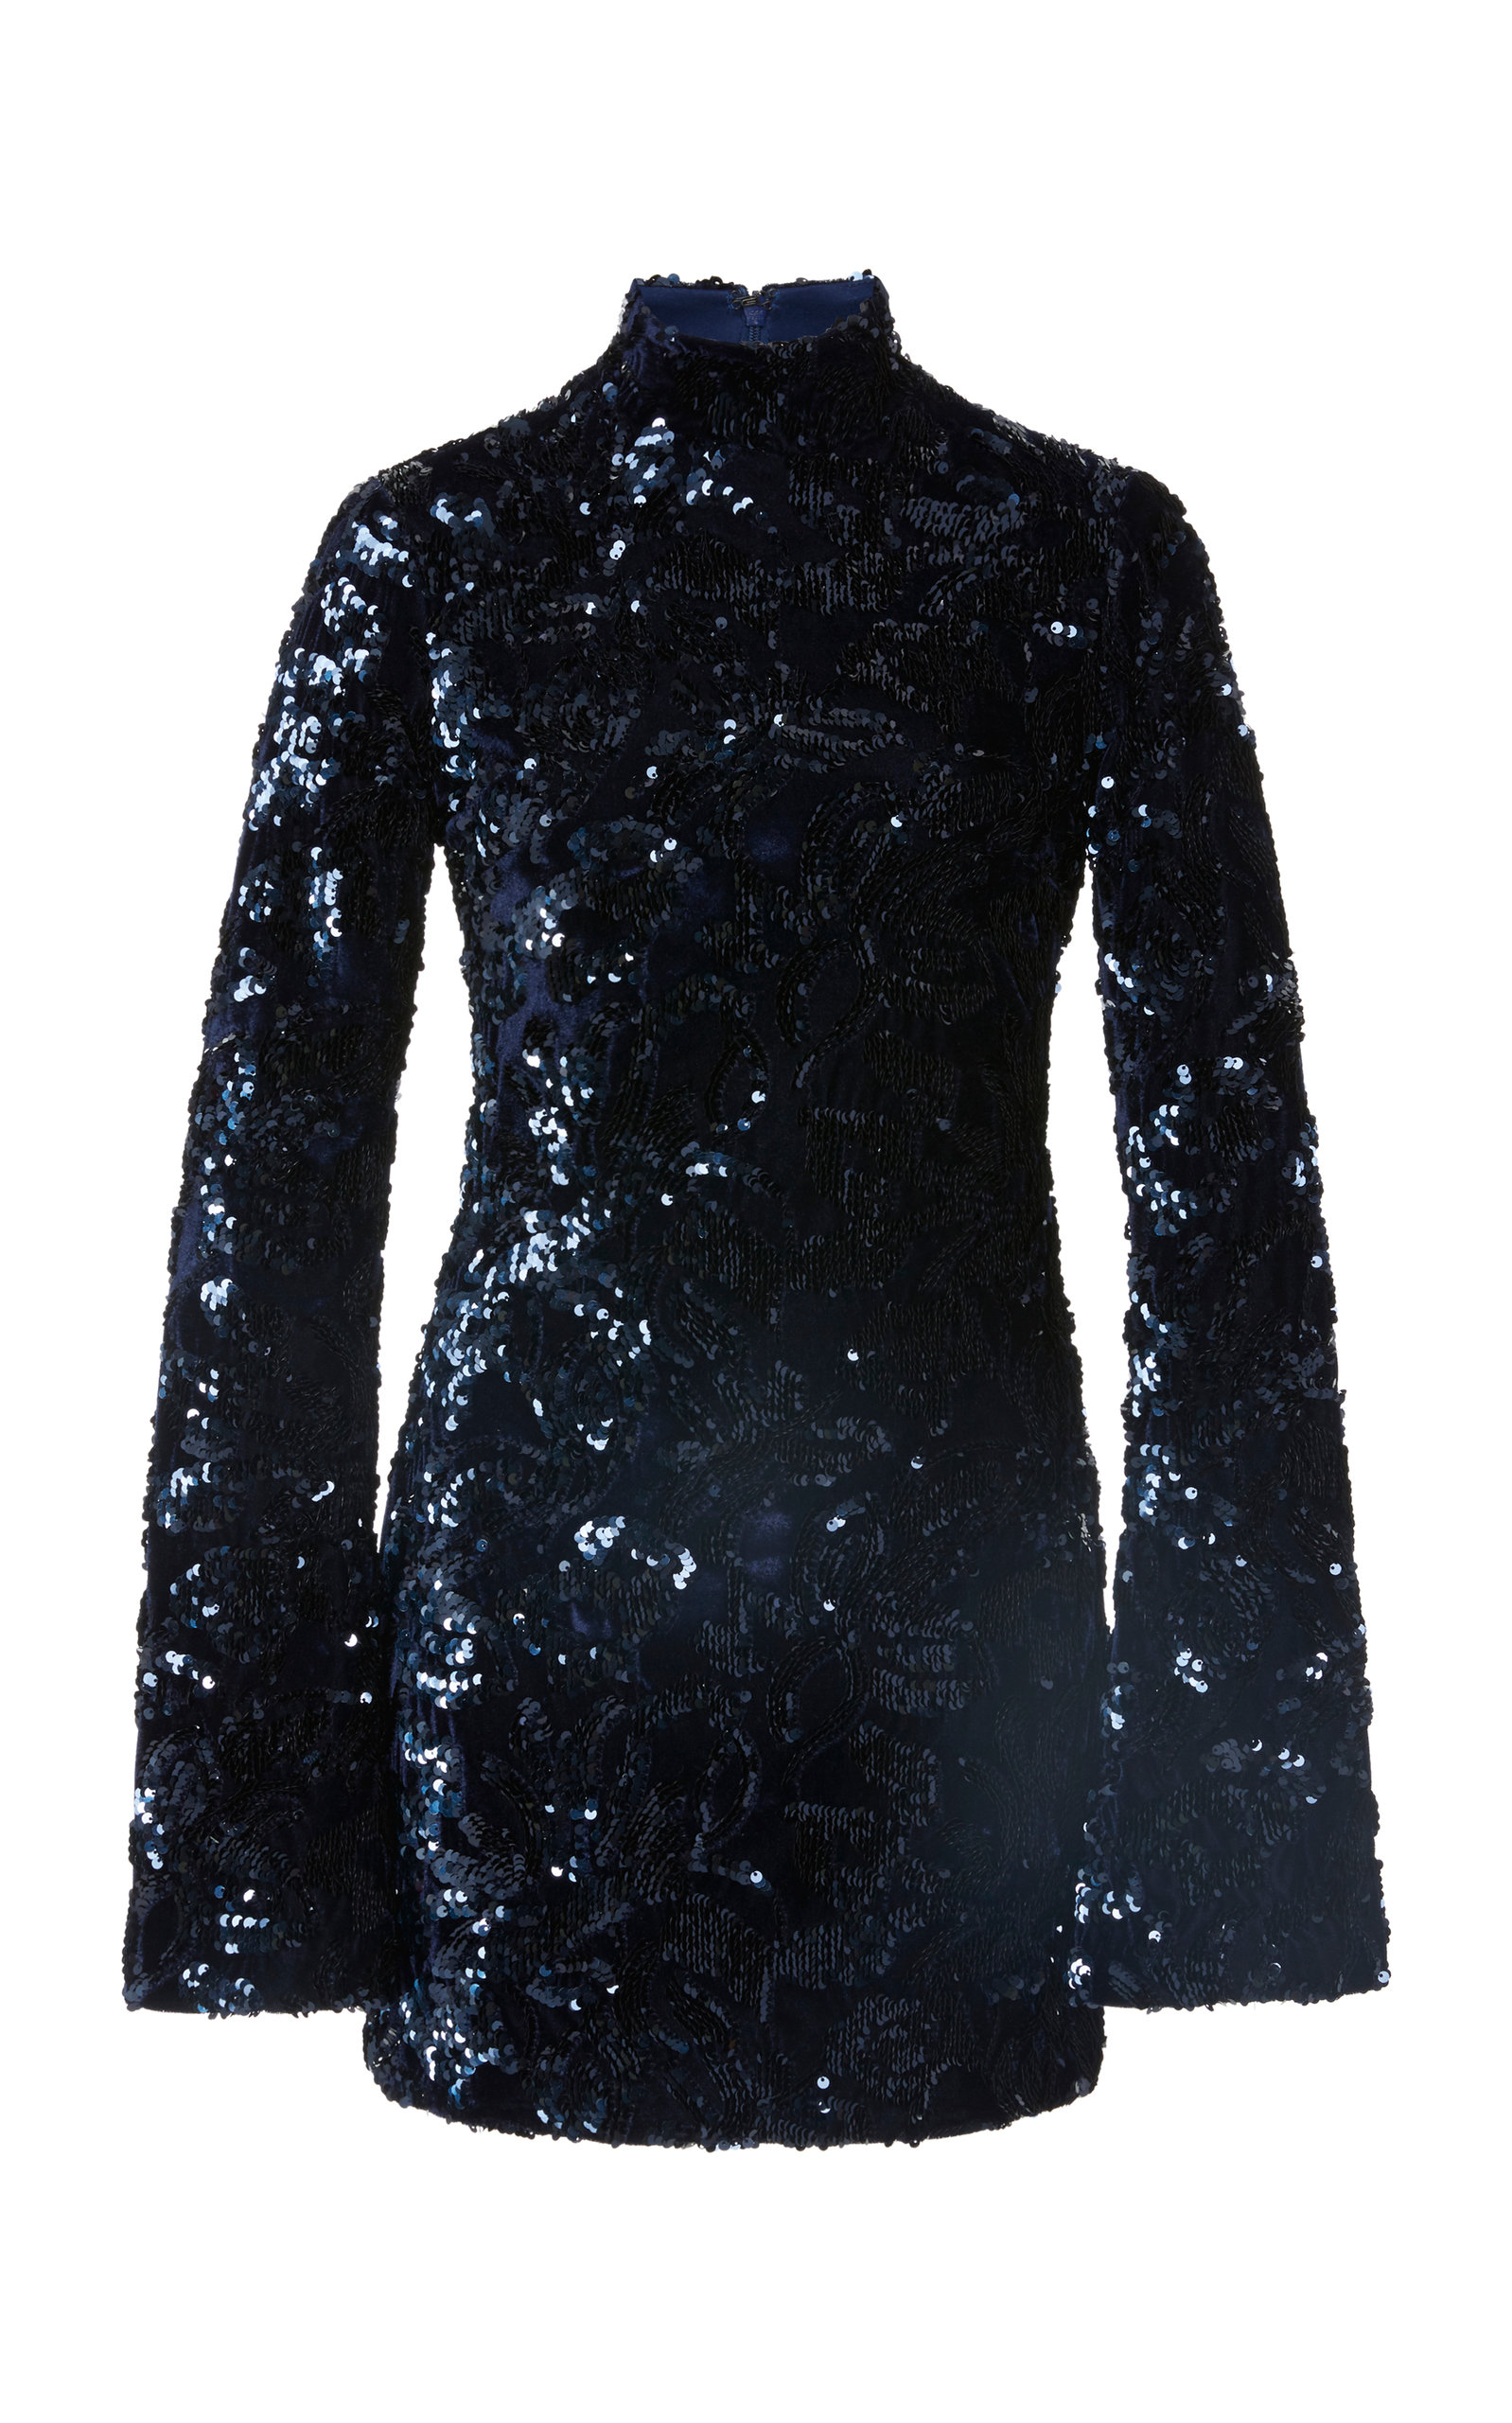 4616f75847a681 AlexisRhapsody Sequin Mini Dress. CLOSE. Loading